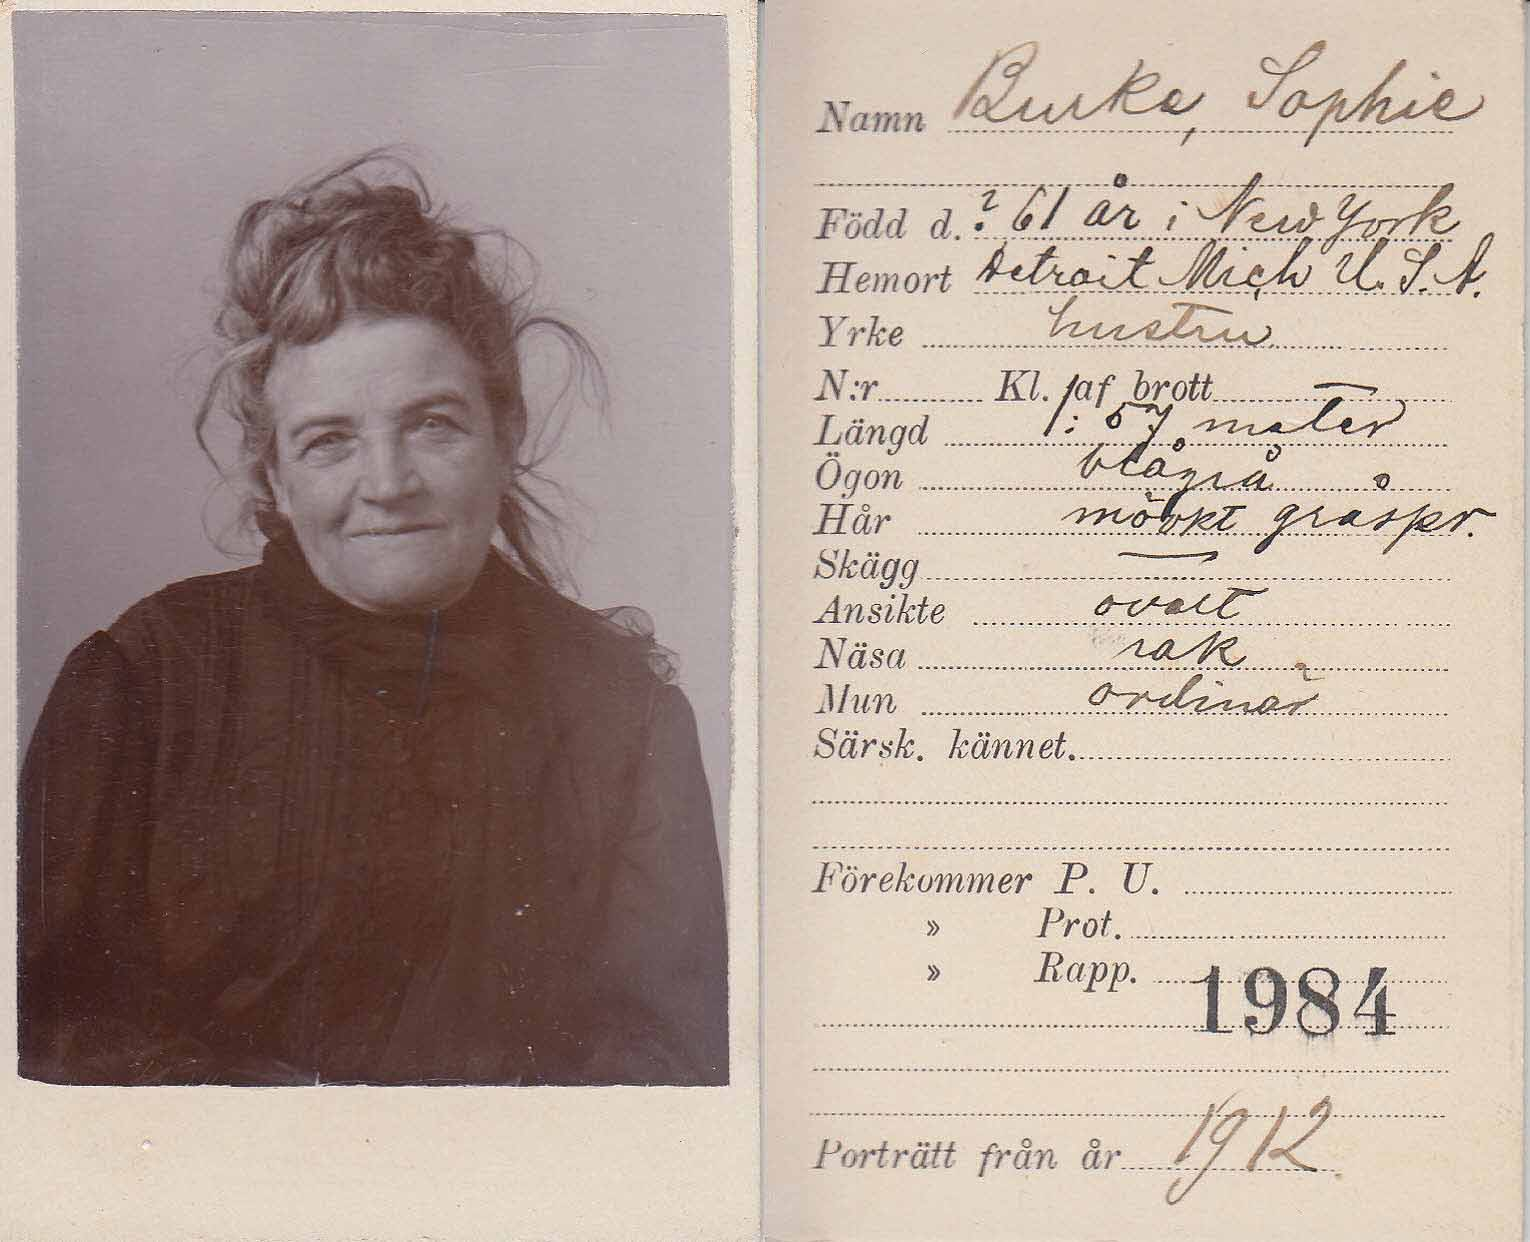 The image shows a booking photograph of Sophie Lyons after she was arrested in Sweden in 1912.